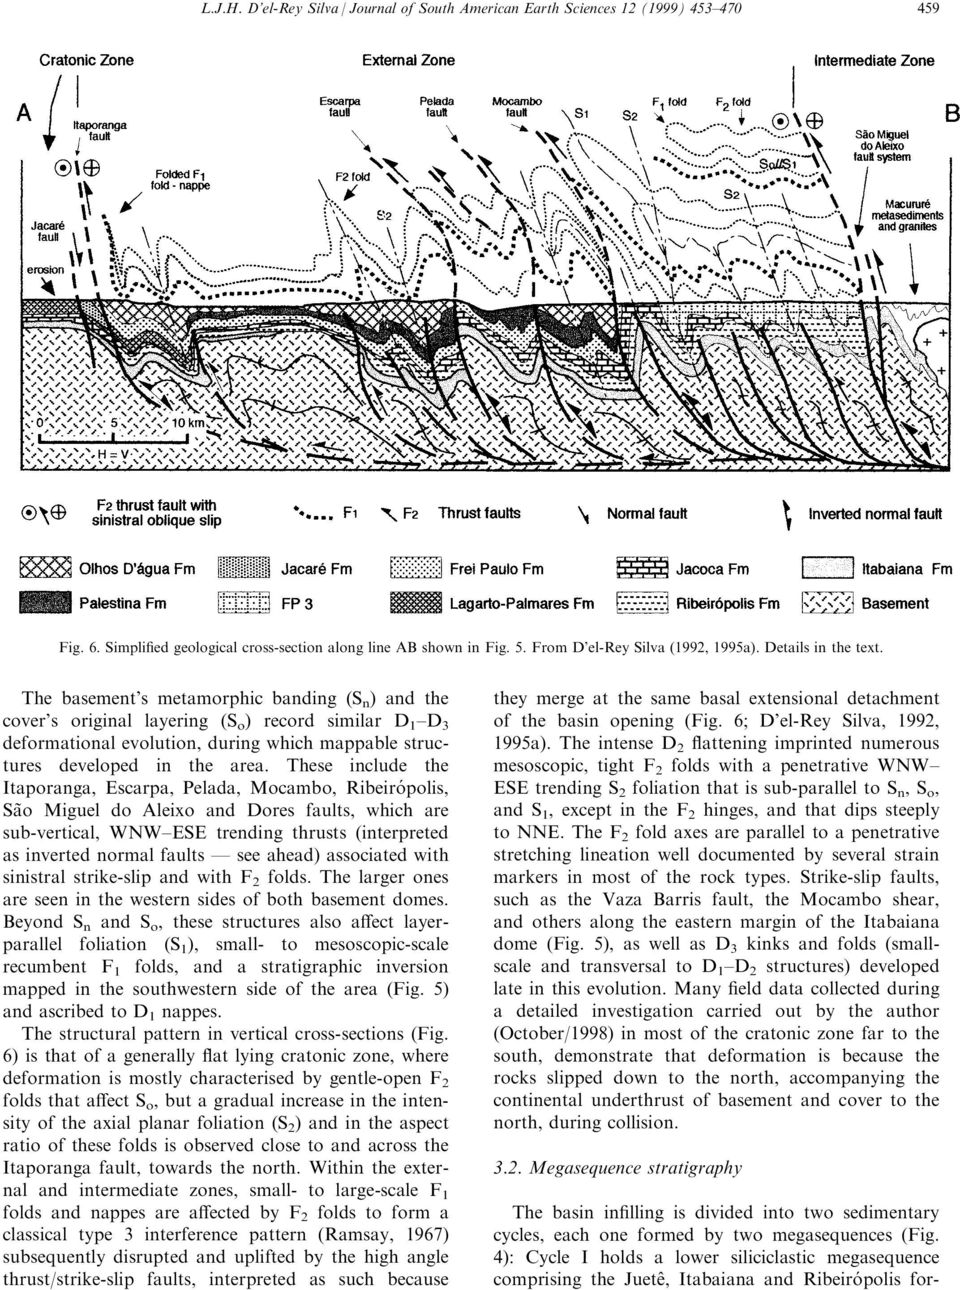 The basement's metamorphic banding (S n ) and the cover's original layering (S o ) record similar D 1 ±D 3 deformational evolution, during which mappable structures developed in the area.